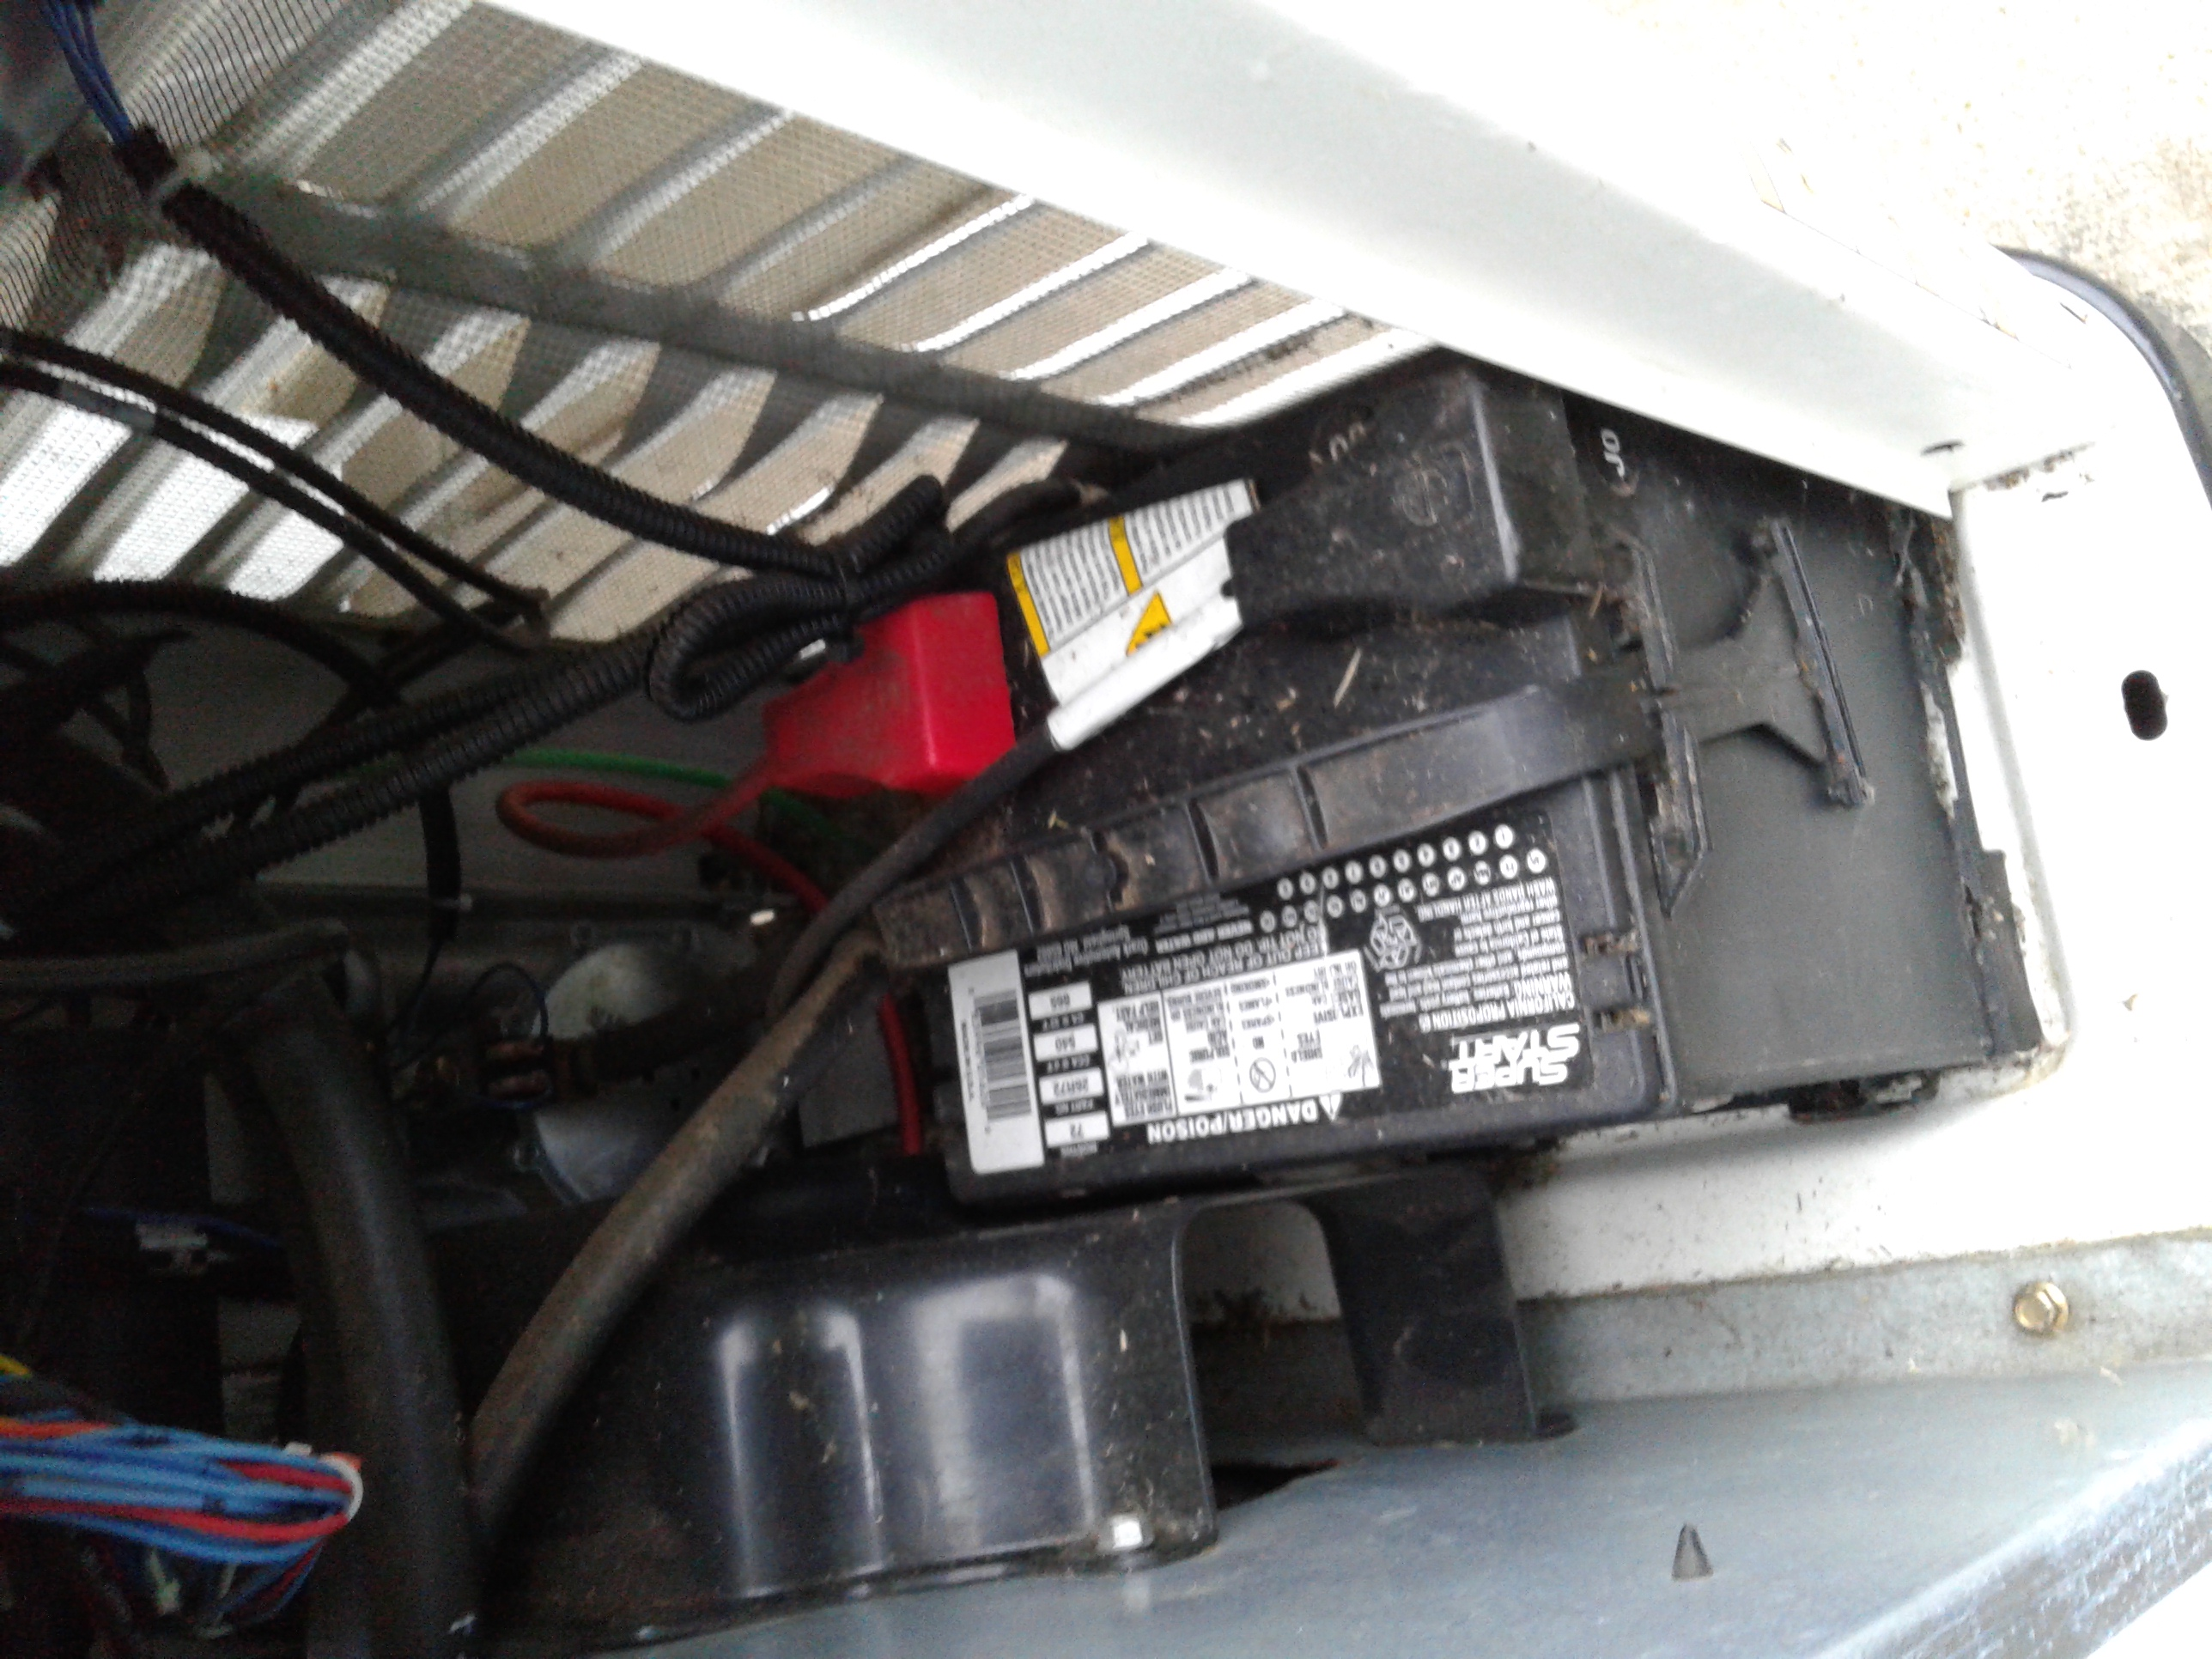 The generator battery needs to be inspected and cleaned